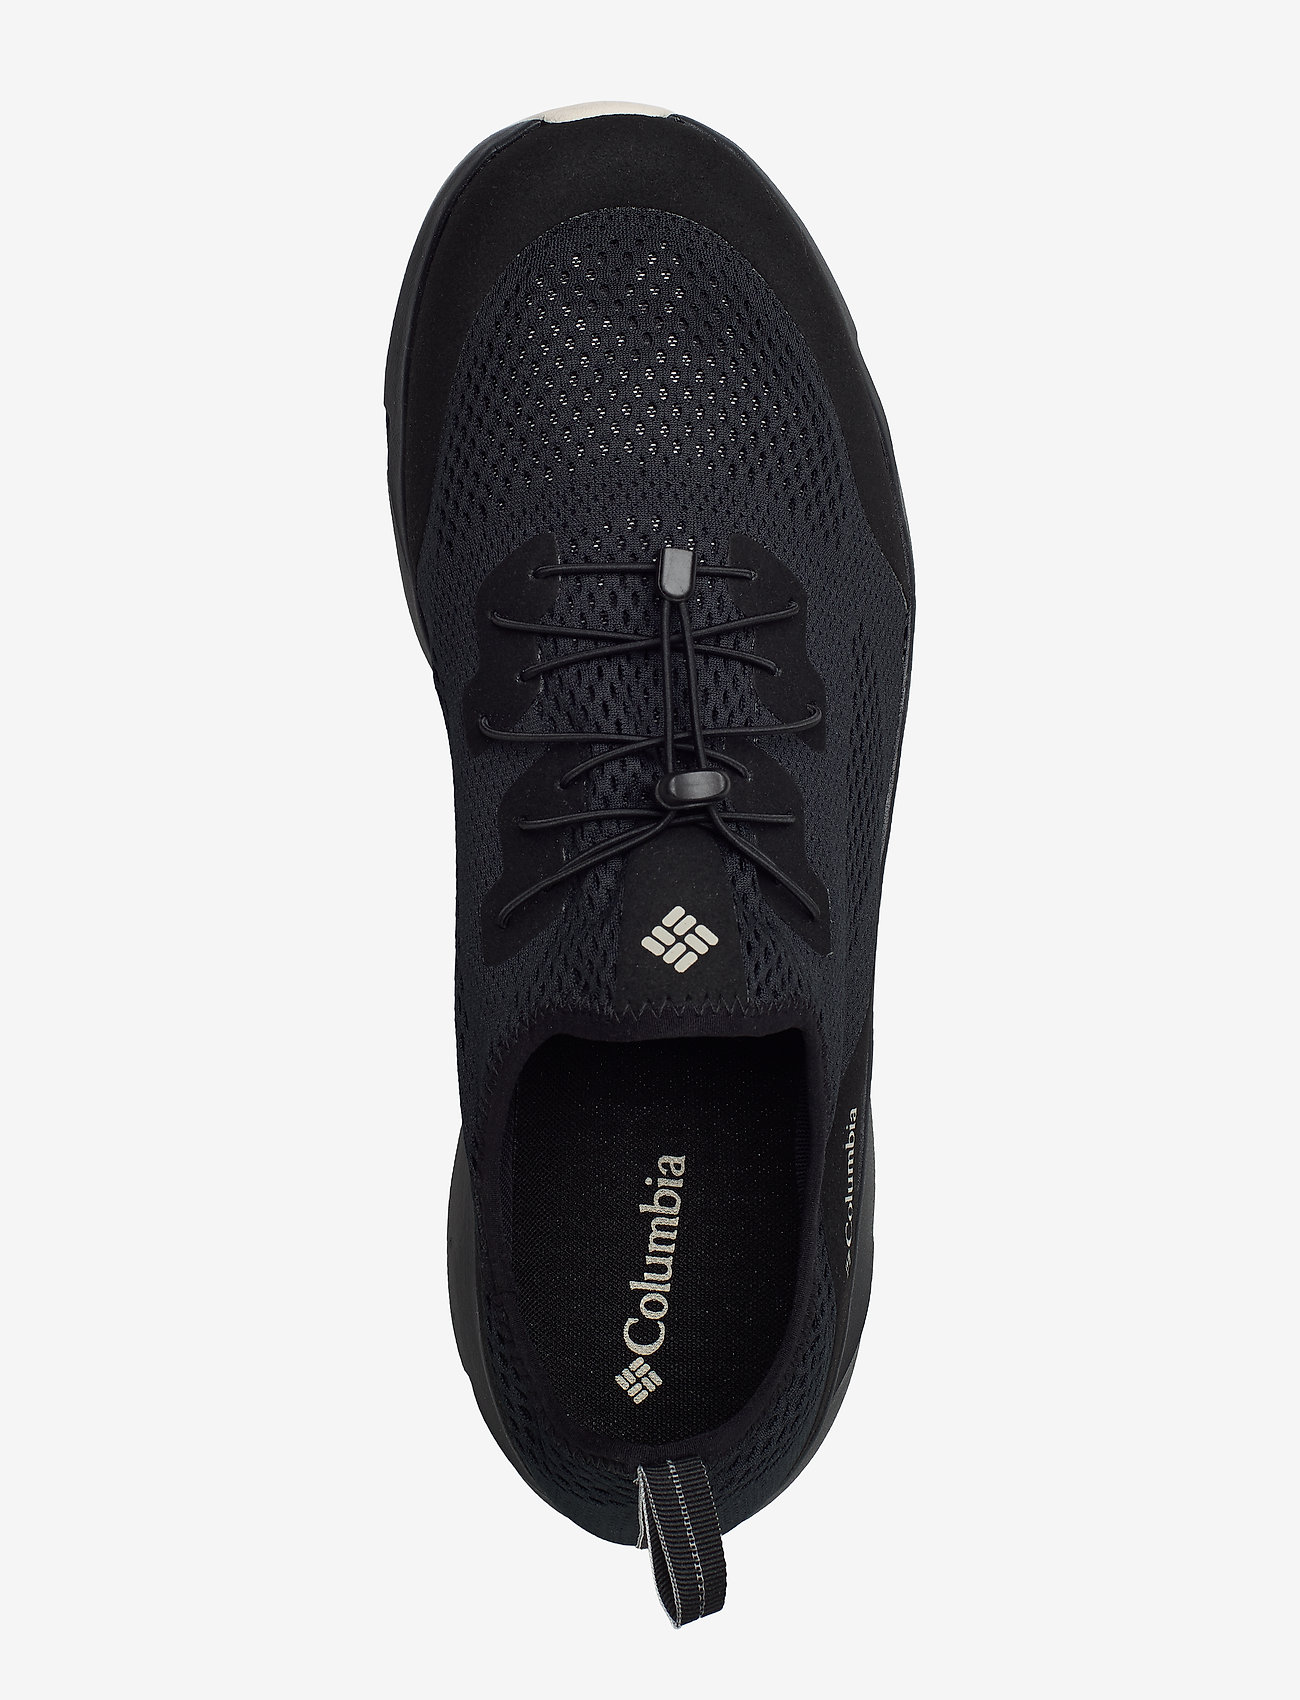 Columbia Vent™ (Black Dark Sto) (50 €) - Columbia jiJea